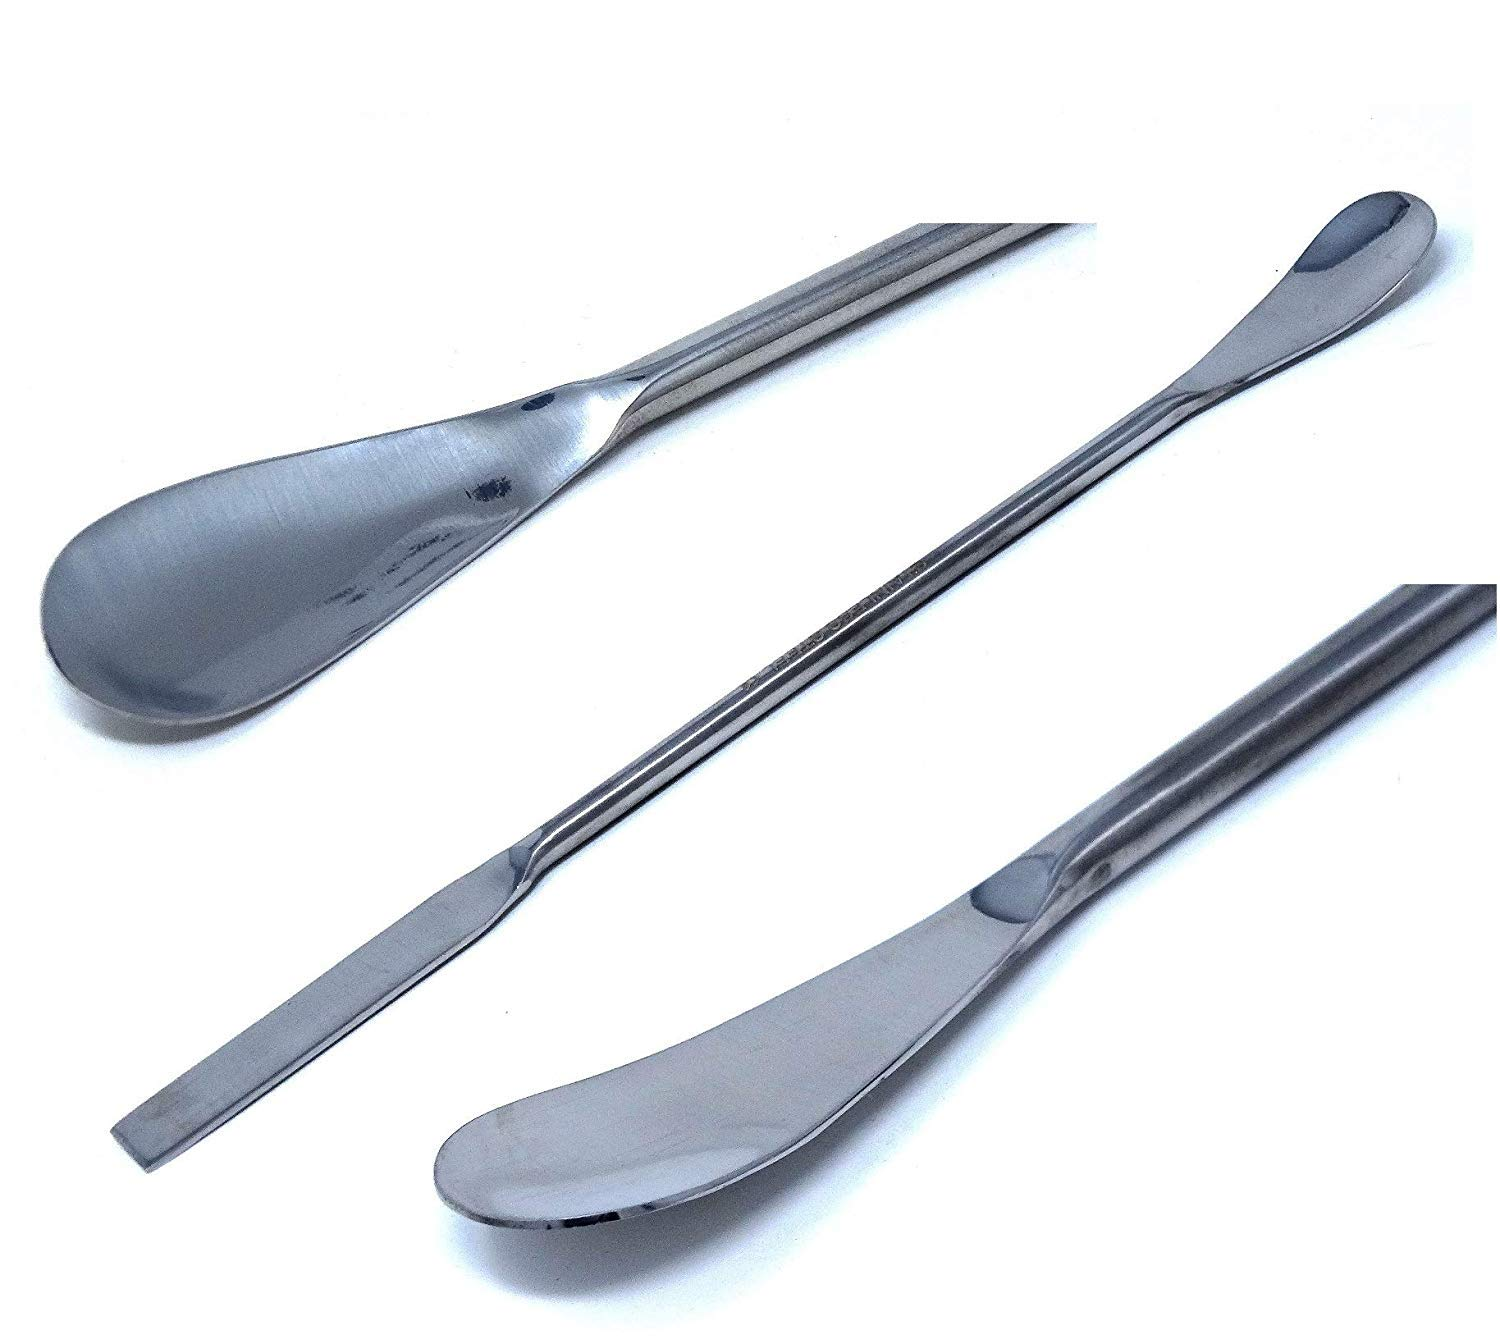 NEW before selling A2Z-SQSP4-7 Stainless Steel Double Ended Sampl Lab Micro Spatula Now free shipping